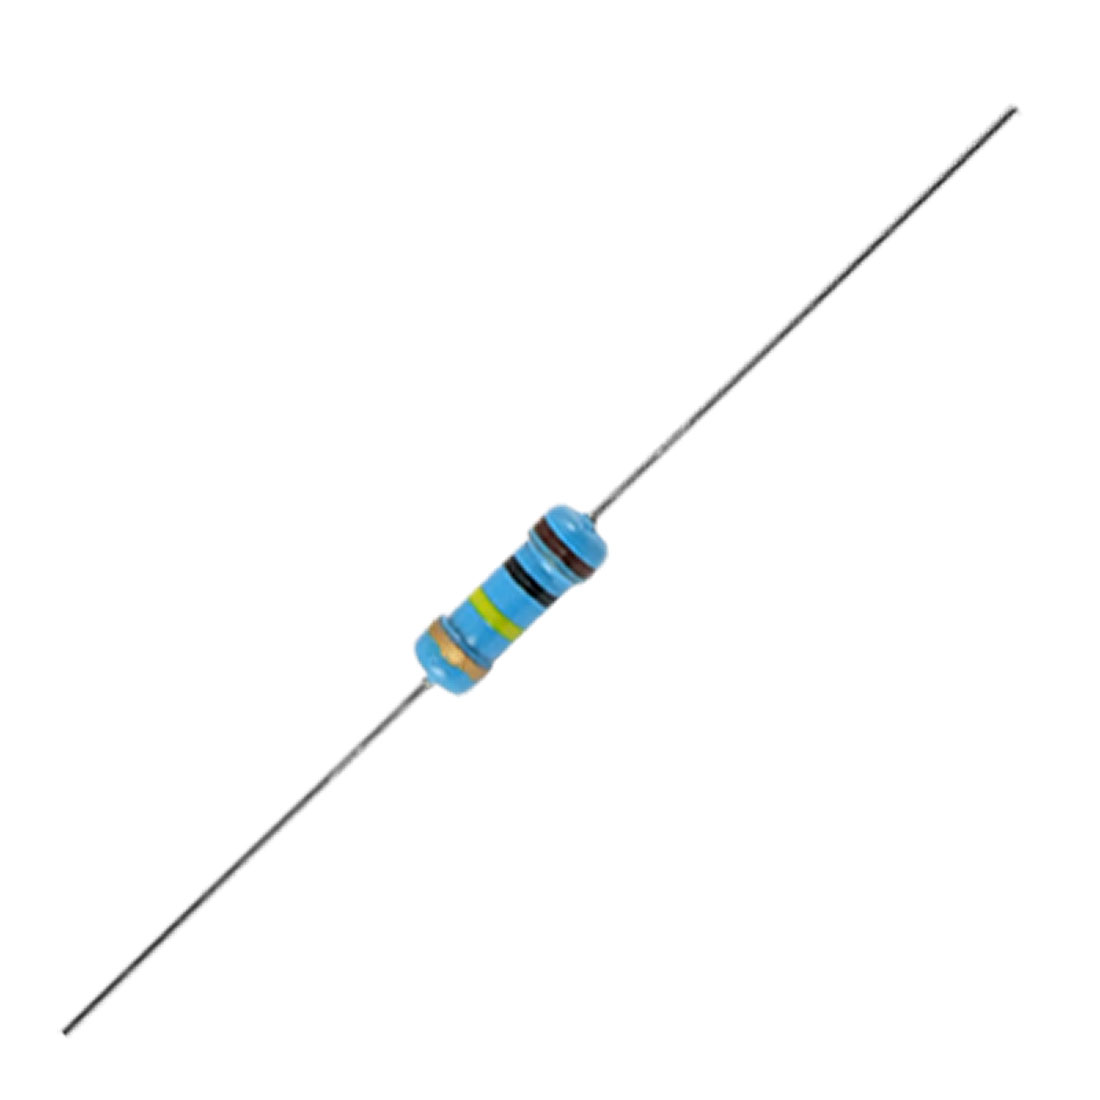 1/2W 100K ohm 5% 4 Band Axial Carbon Film Resistors